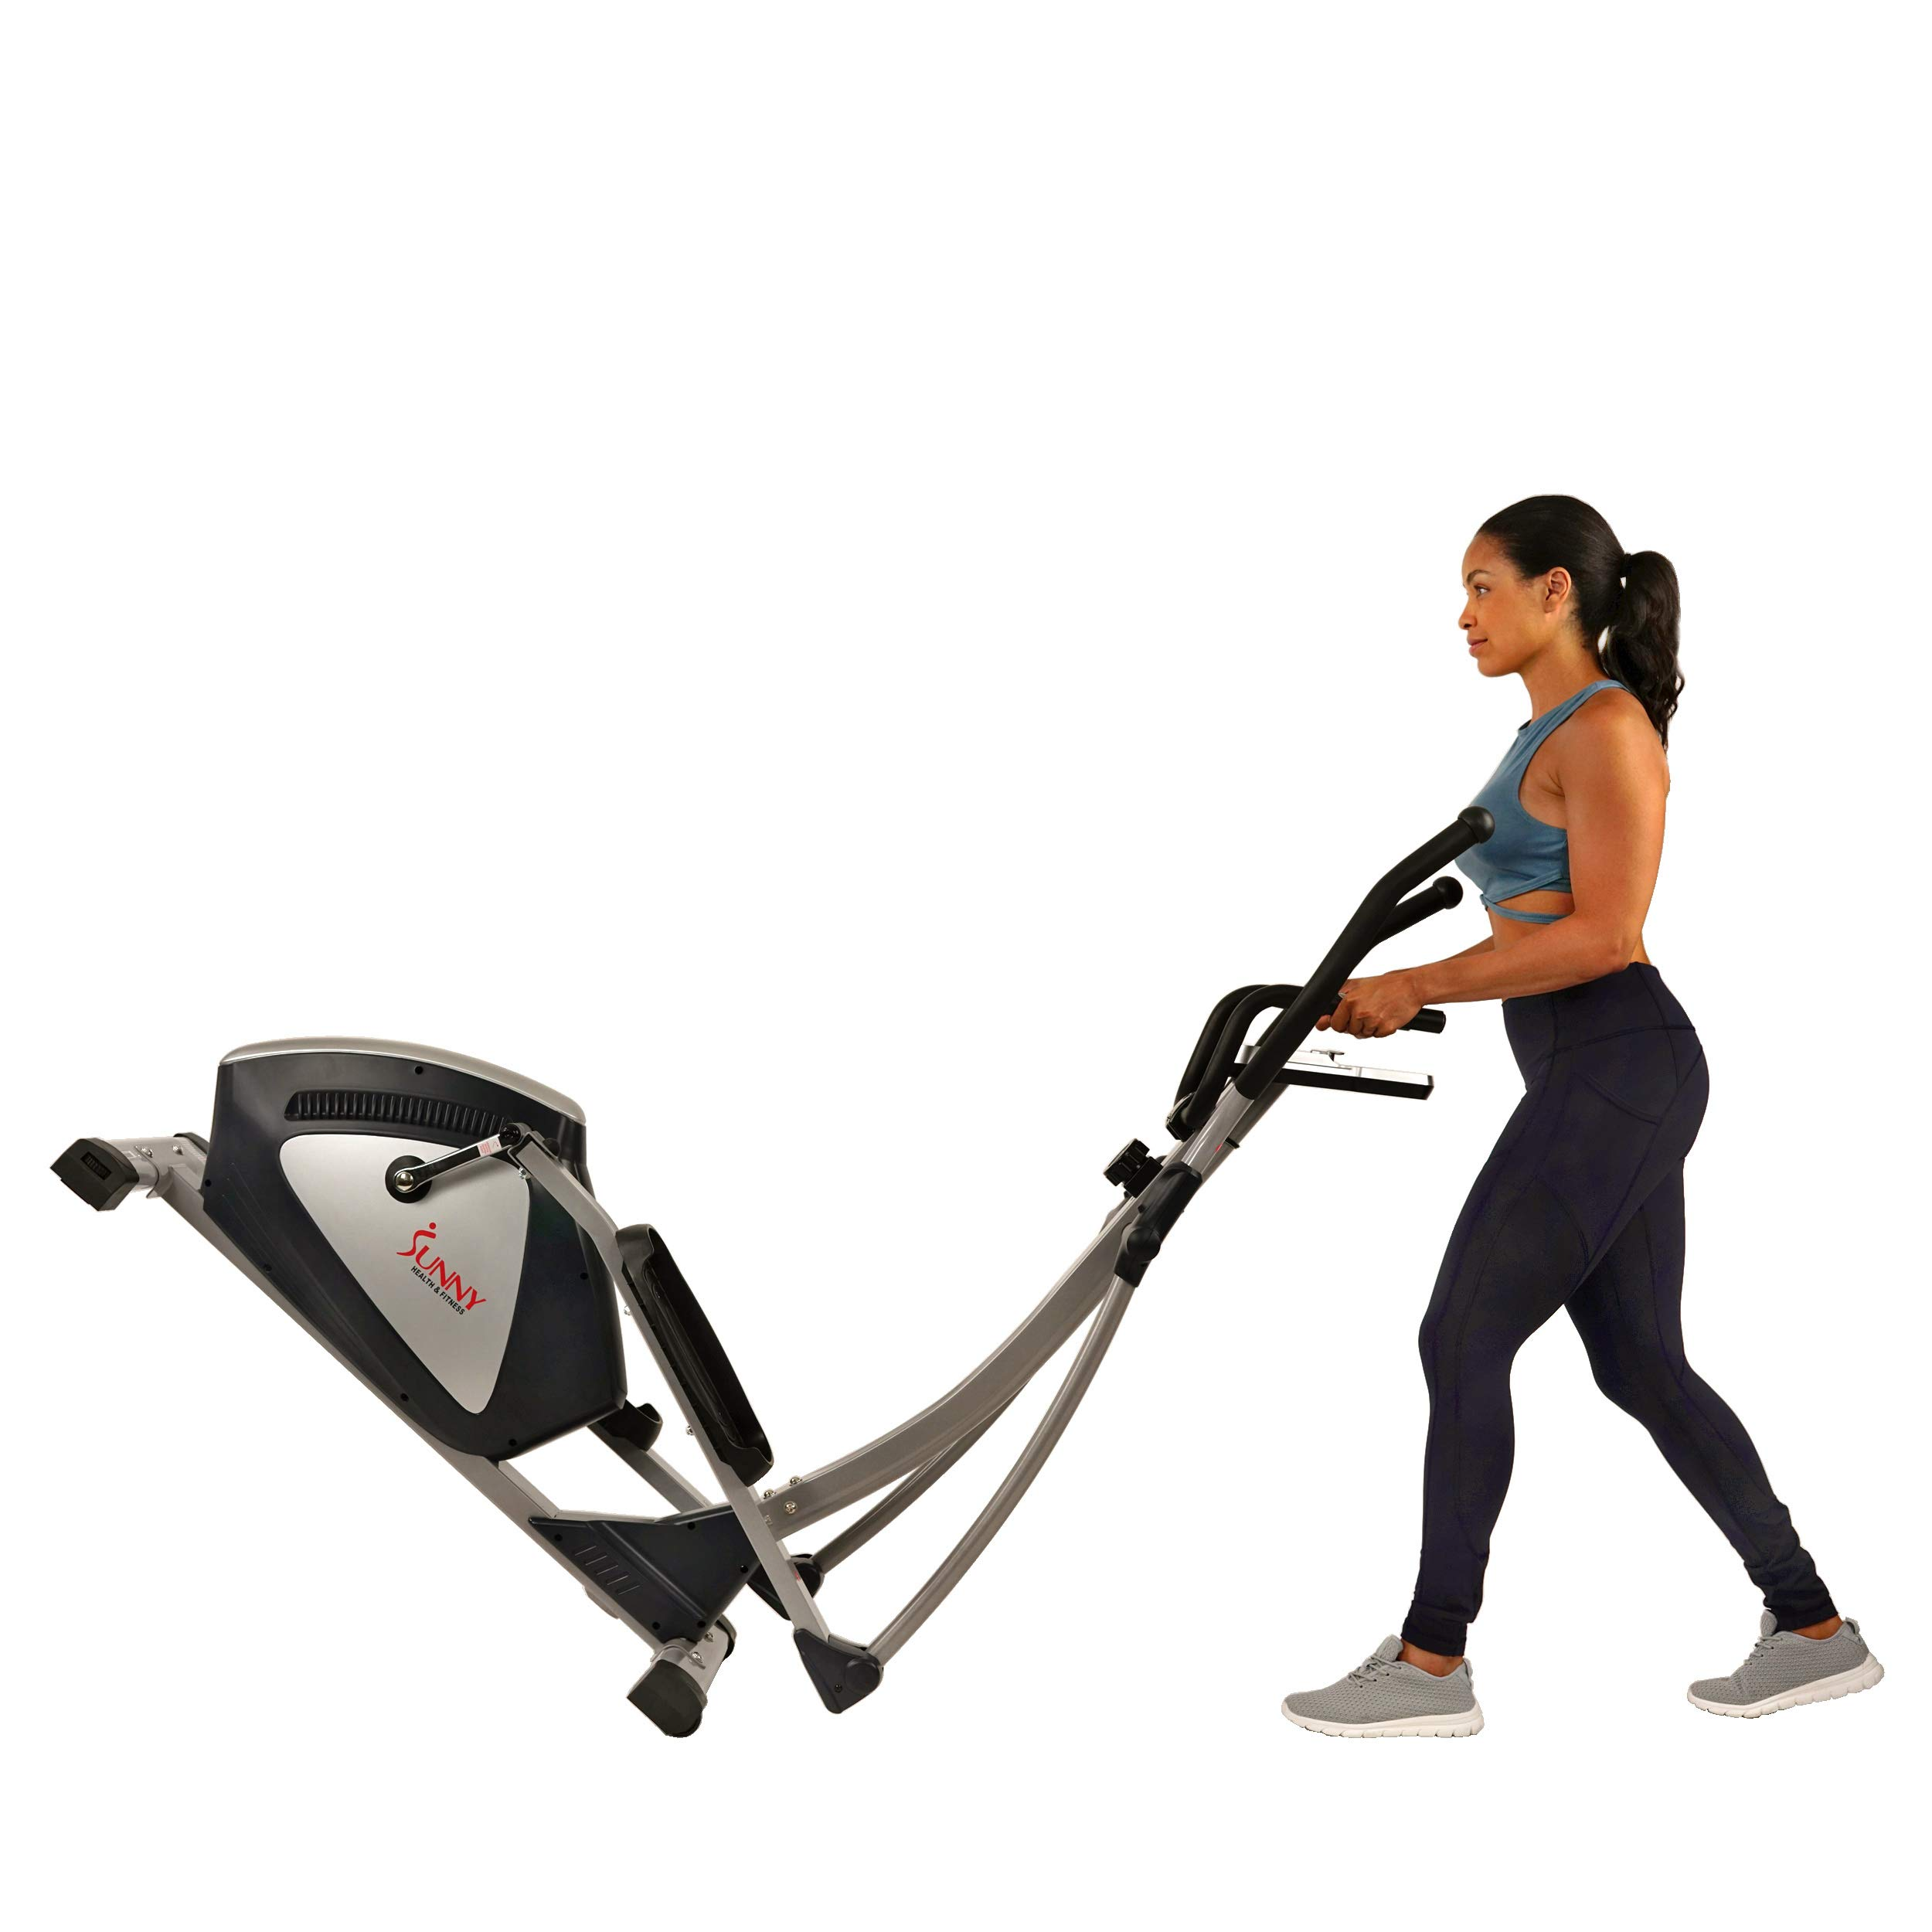 Sunny Health & Fitness Magnetic Elliptical Trainer Elliptical Machine w/  LCD Monitor and Heart Rate Monitoring - Endurance Zone - SF-E3804 by Sunny Health & Fitness (Image #10)